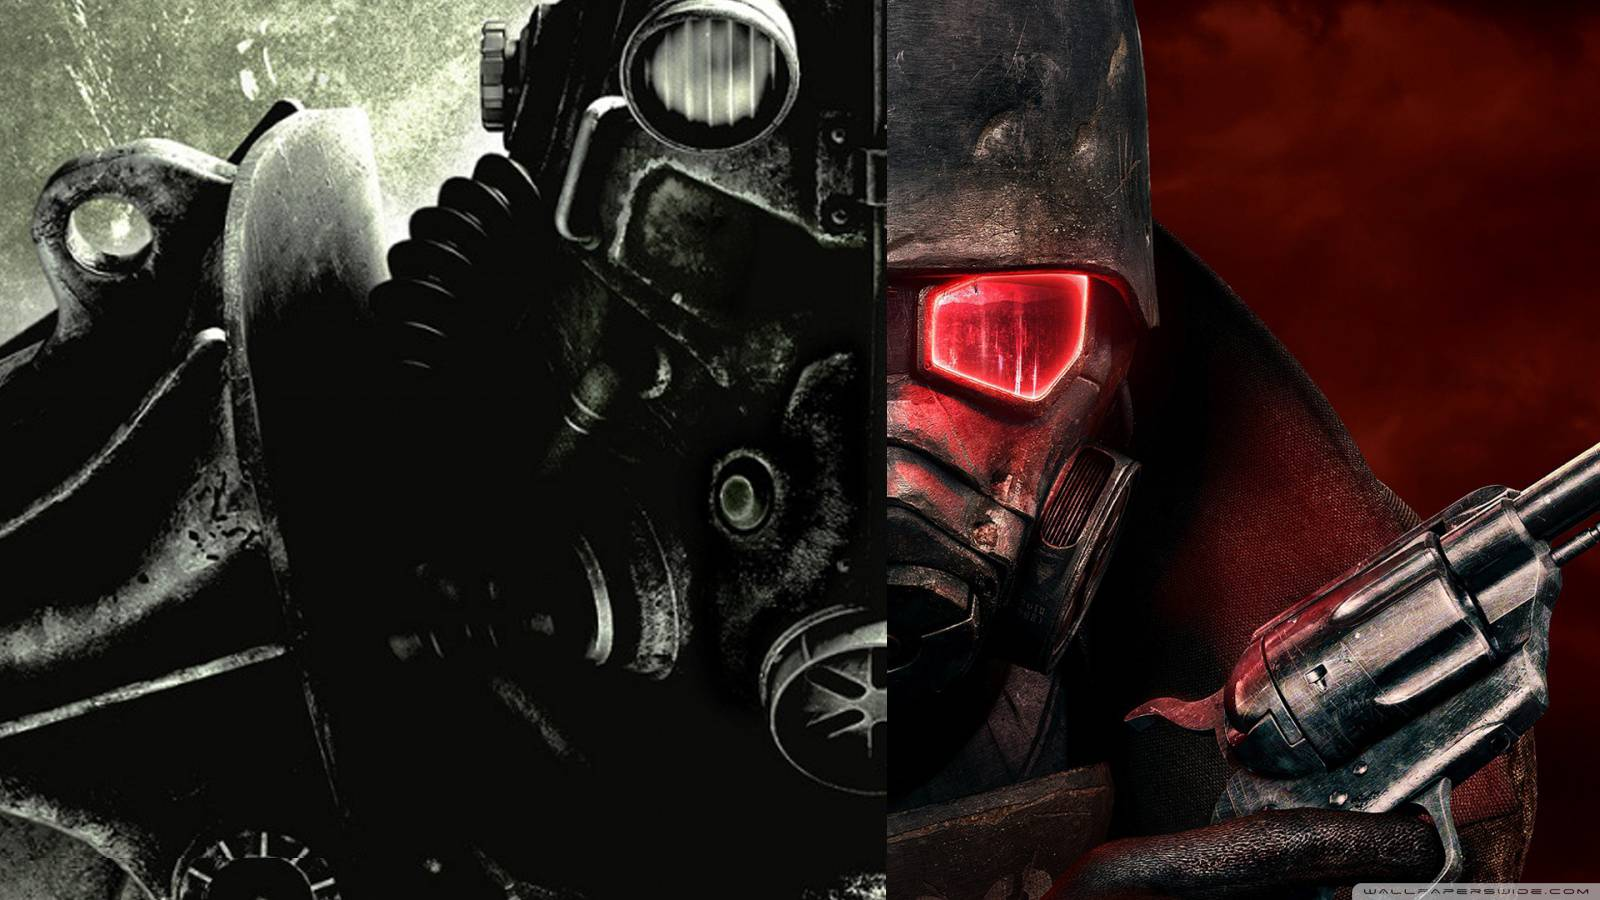 Fall Out Boy Symbol Wallpaper Fallout 3 Wallpapers Hd Wallpaper Cave